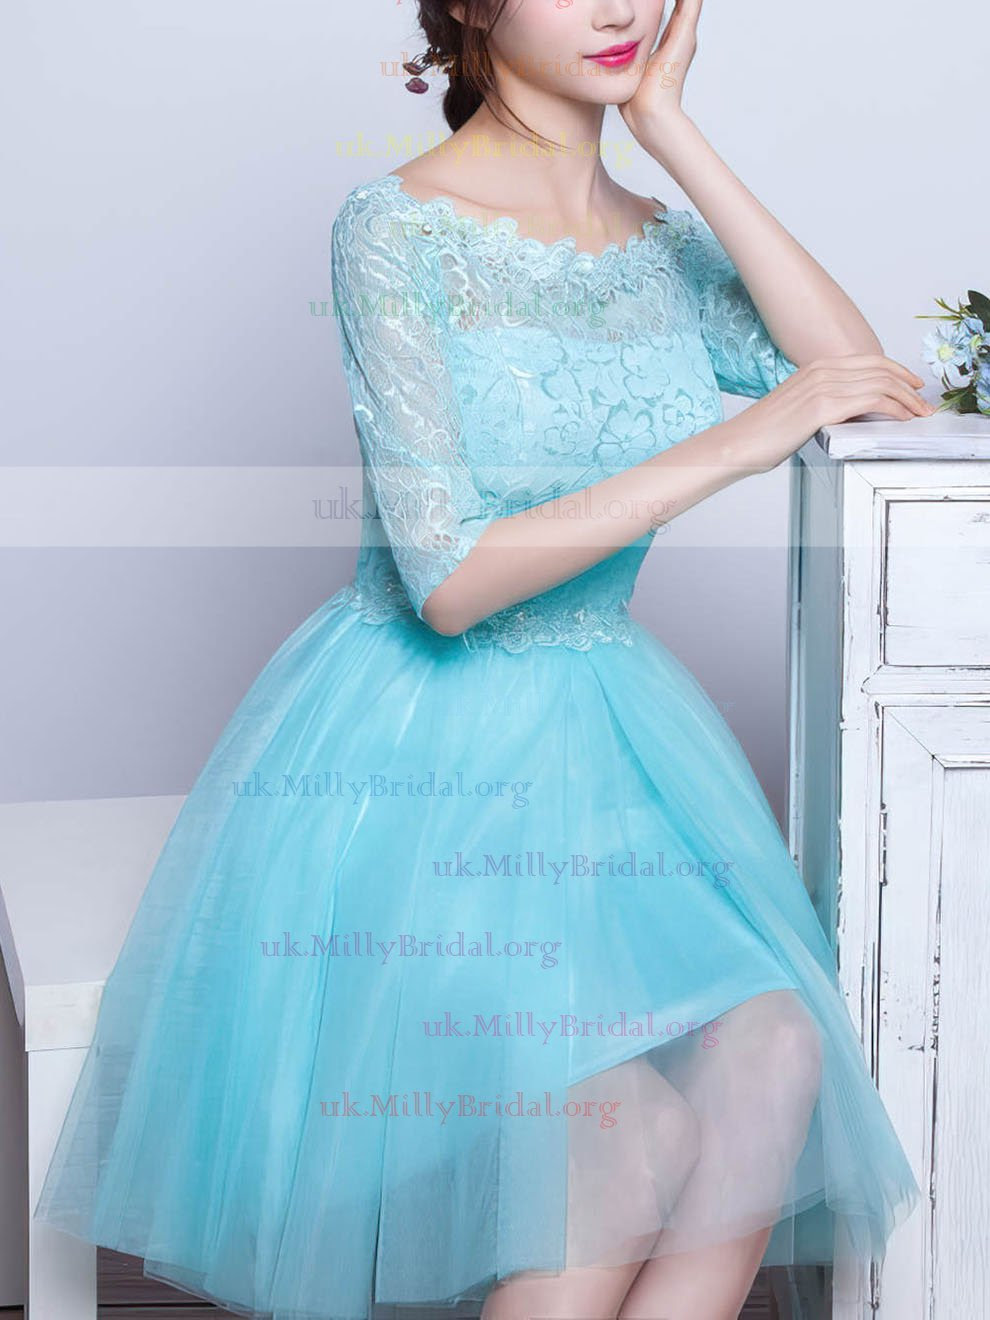 http://uk.millybridal.org/product/pretty-a-line-scoop-neck-lace-tulle-with-beading-short-mini-1-2-sleeve-prom-dresses-ukm020102871-18269.html?utm_source=minipost&utm_medium=1023&utm_campaign=blog